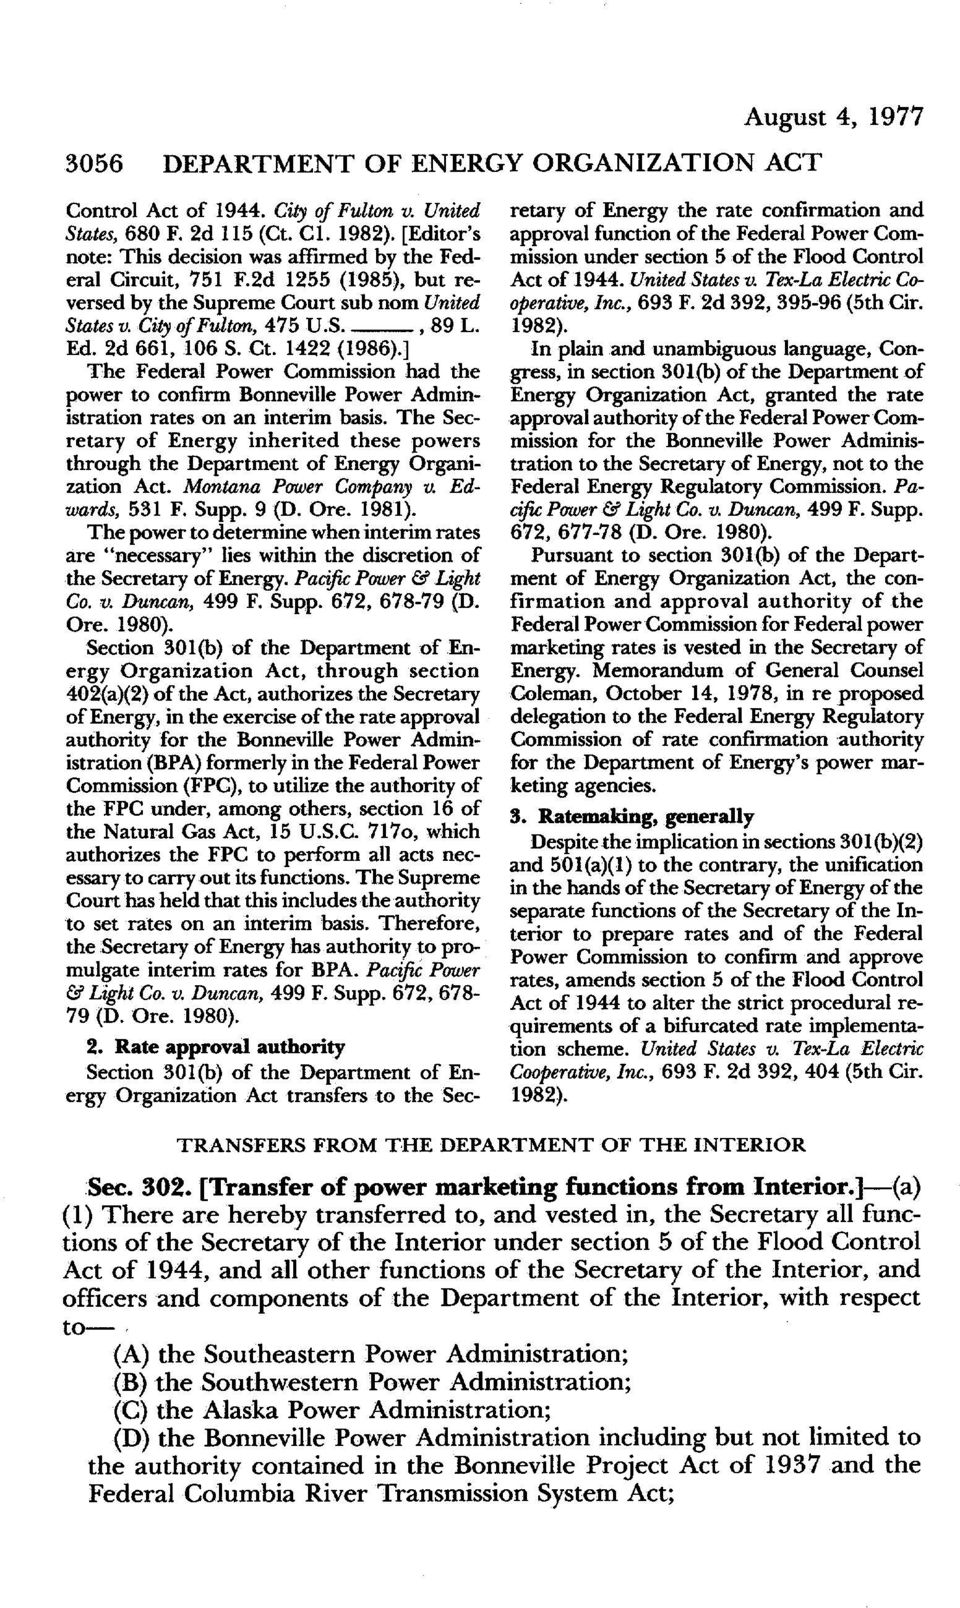 1422 (1986).] The Federal Power Commission had the power to confirm Bonneville Power Administration rates on an interim basis.